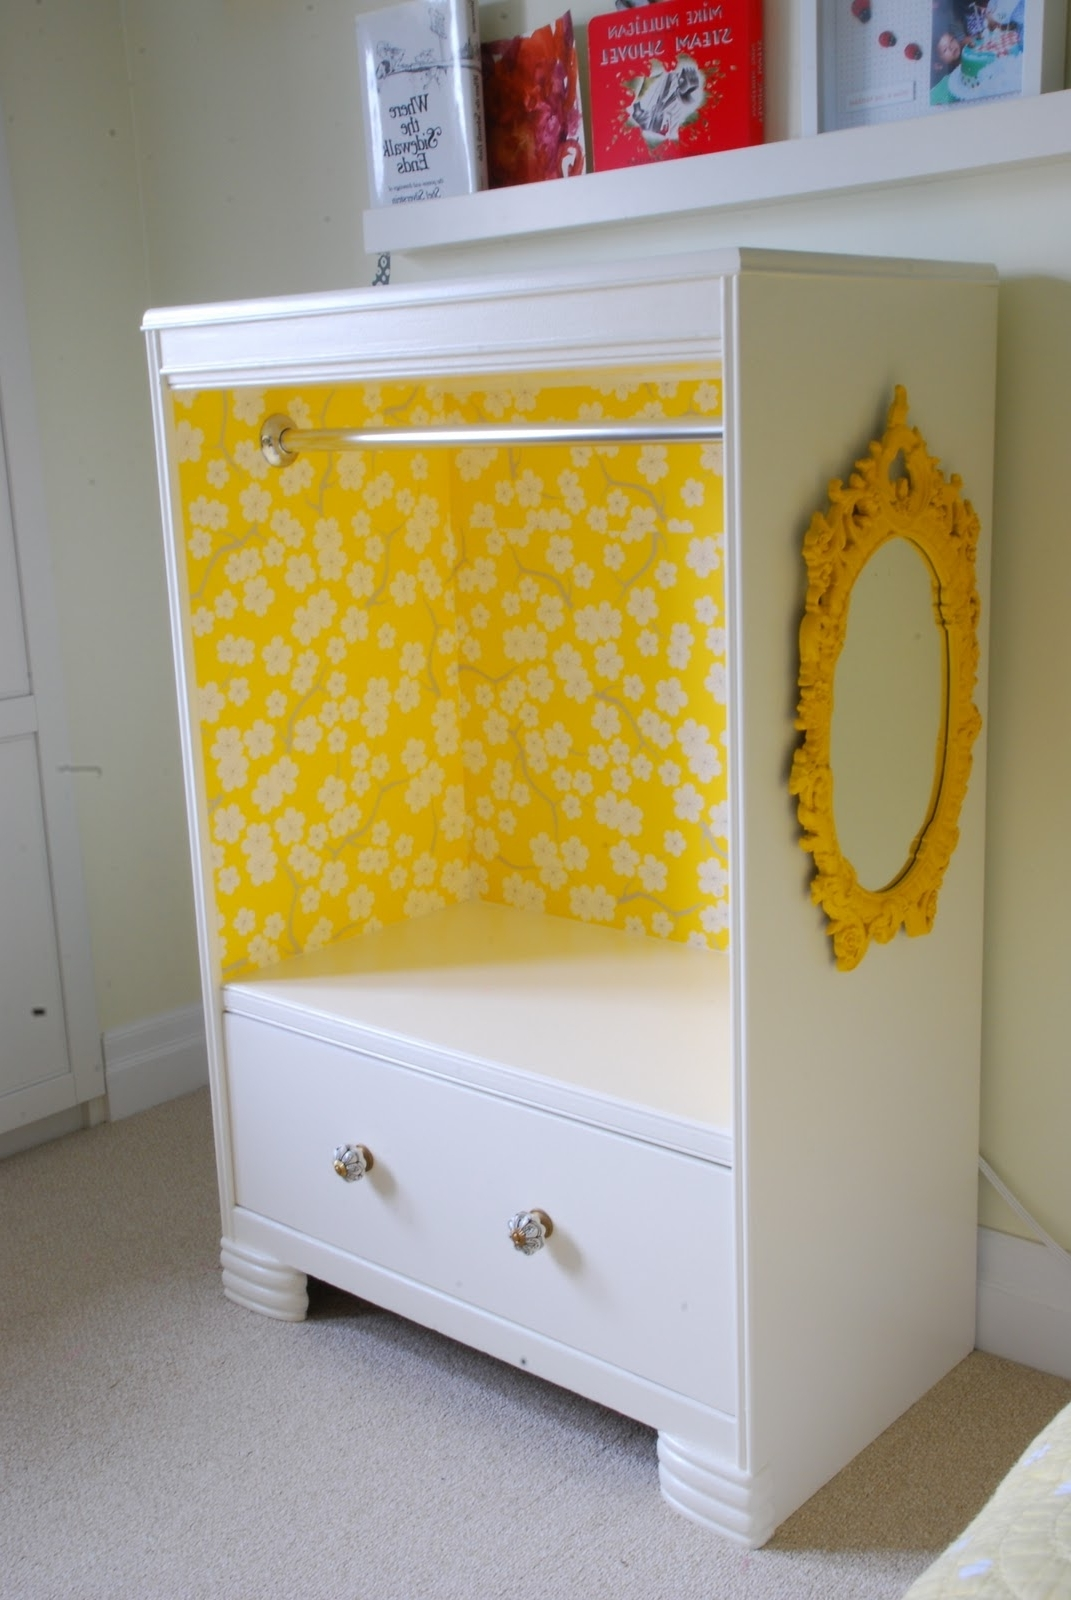 Wardrobes For Baby Clothes Within 2018 Kids' Storage And Organization Ideas – Part  (View 13 of 15)